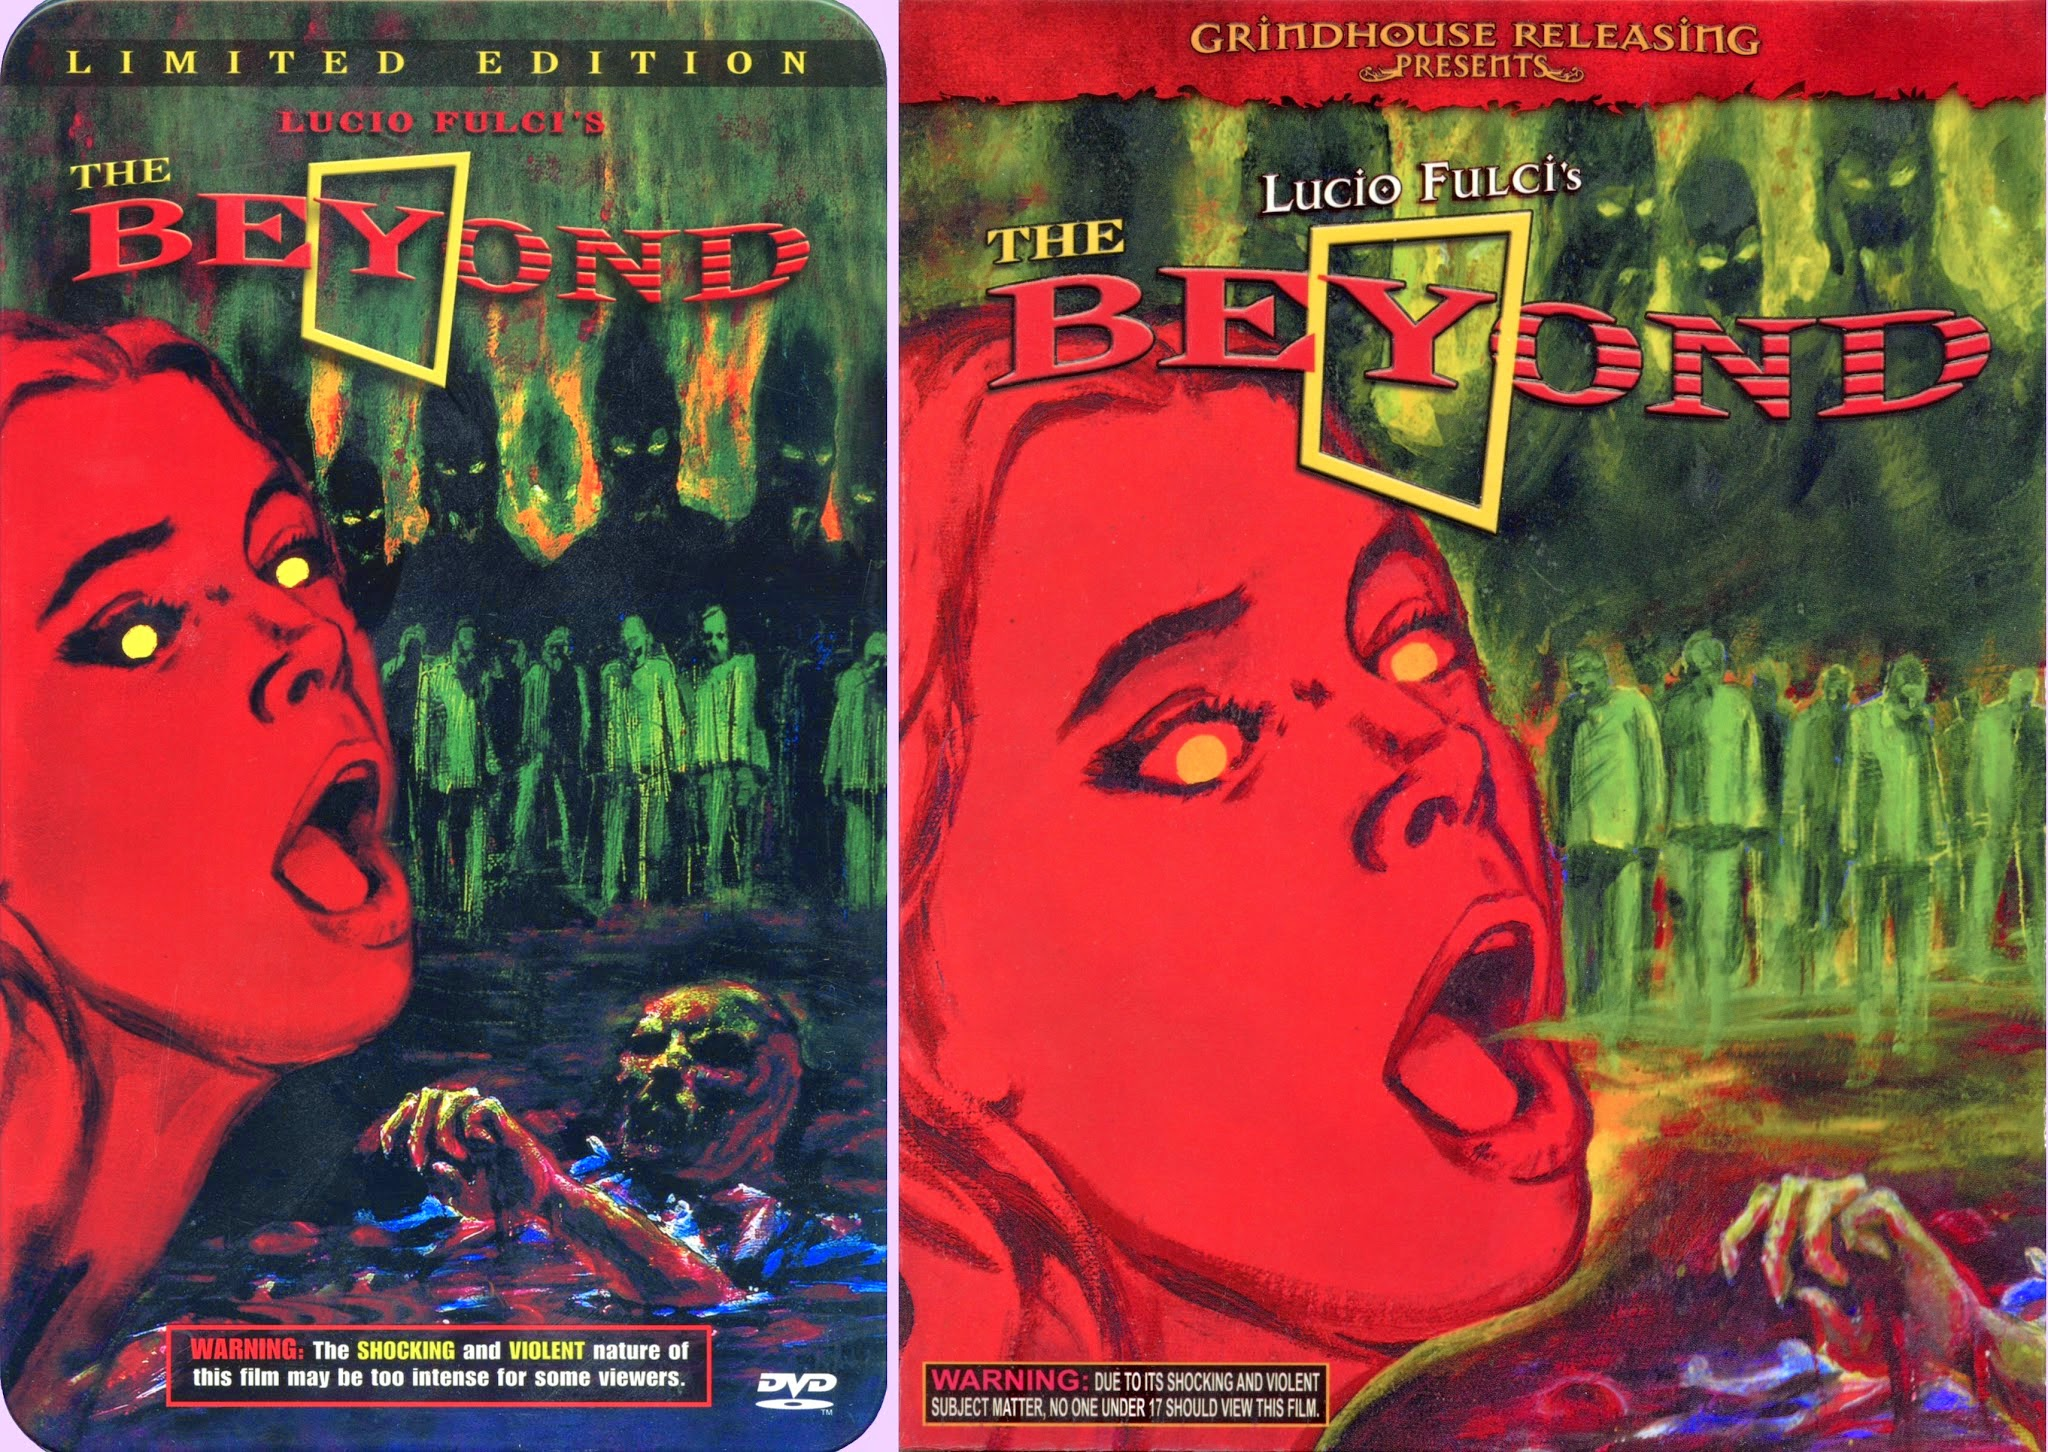 DVD Exotica: Beyond Grindhouse's The Beyond (DVD/ Blu-ray